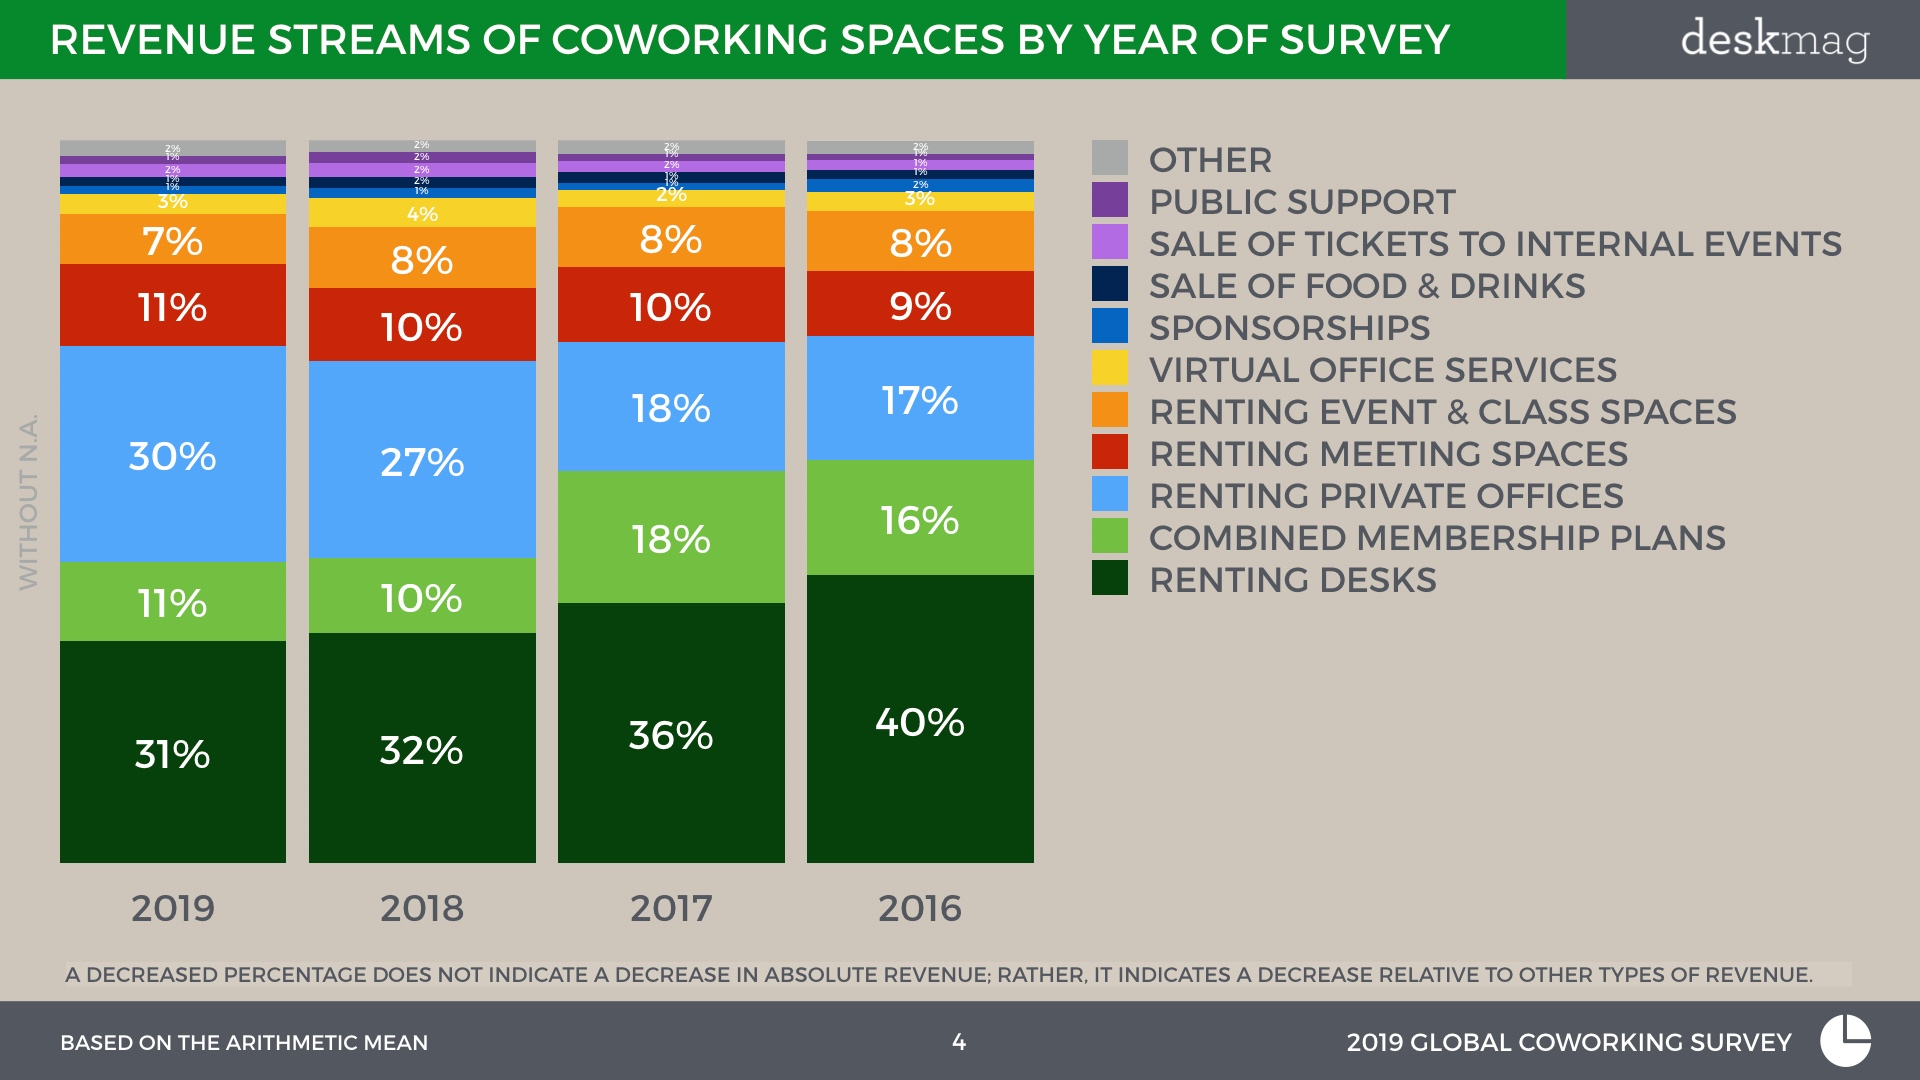 Revenue streams of coworking spaces by year of survey.